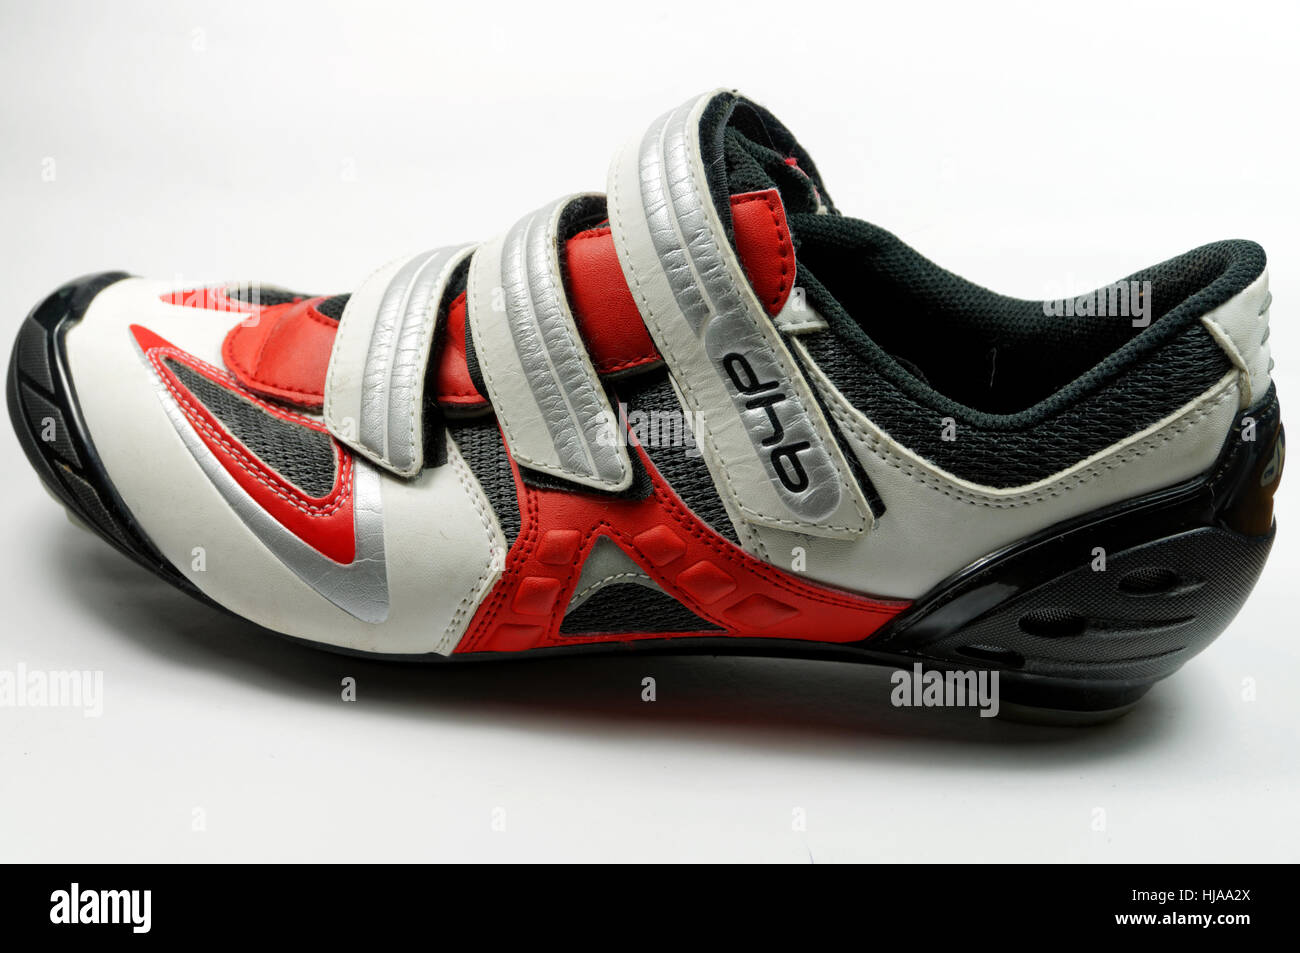 DHB brand road cycling shoe - Stock Image